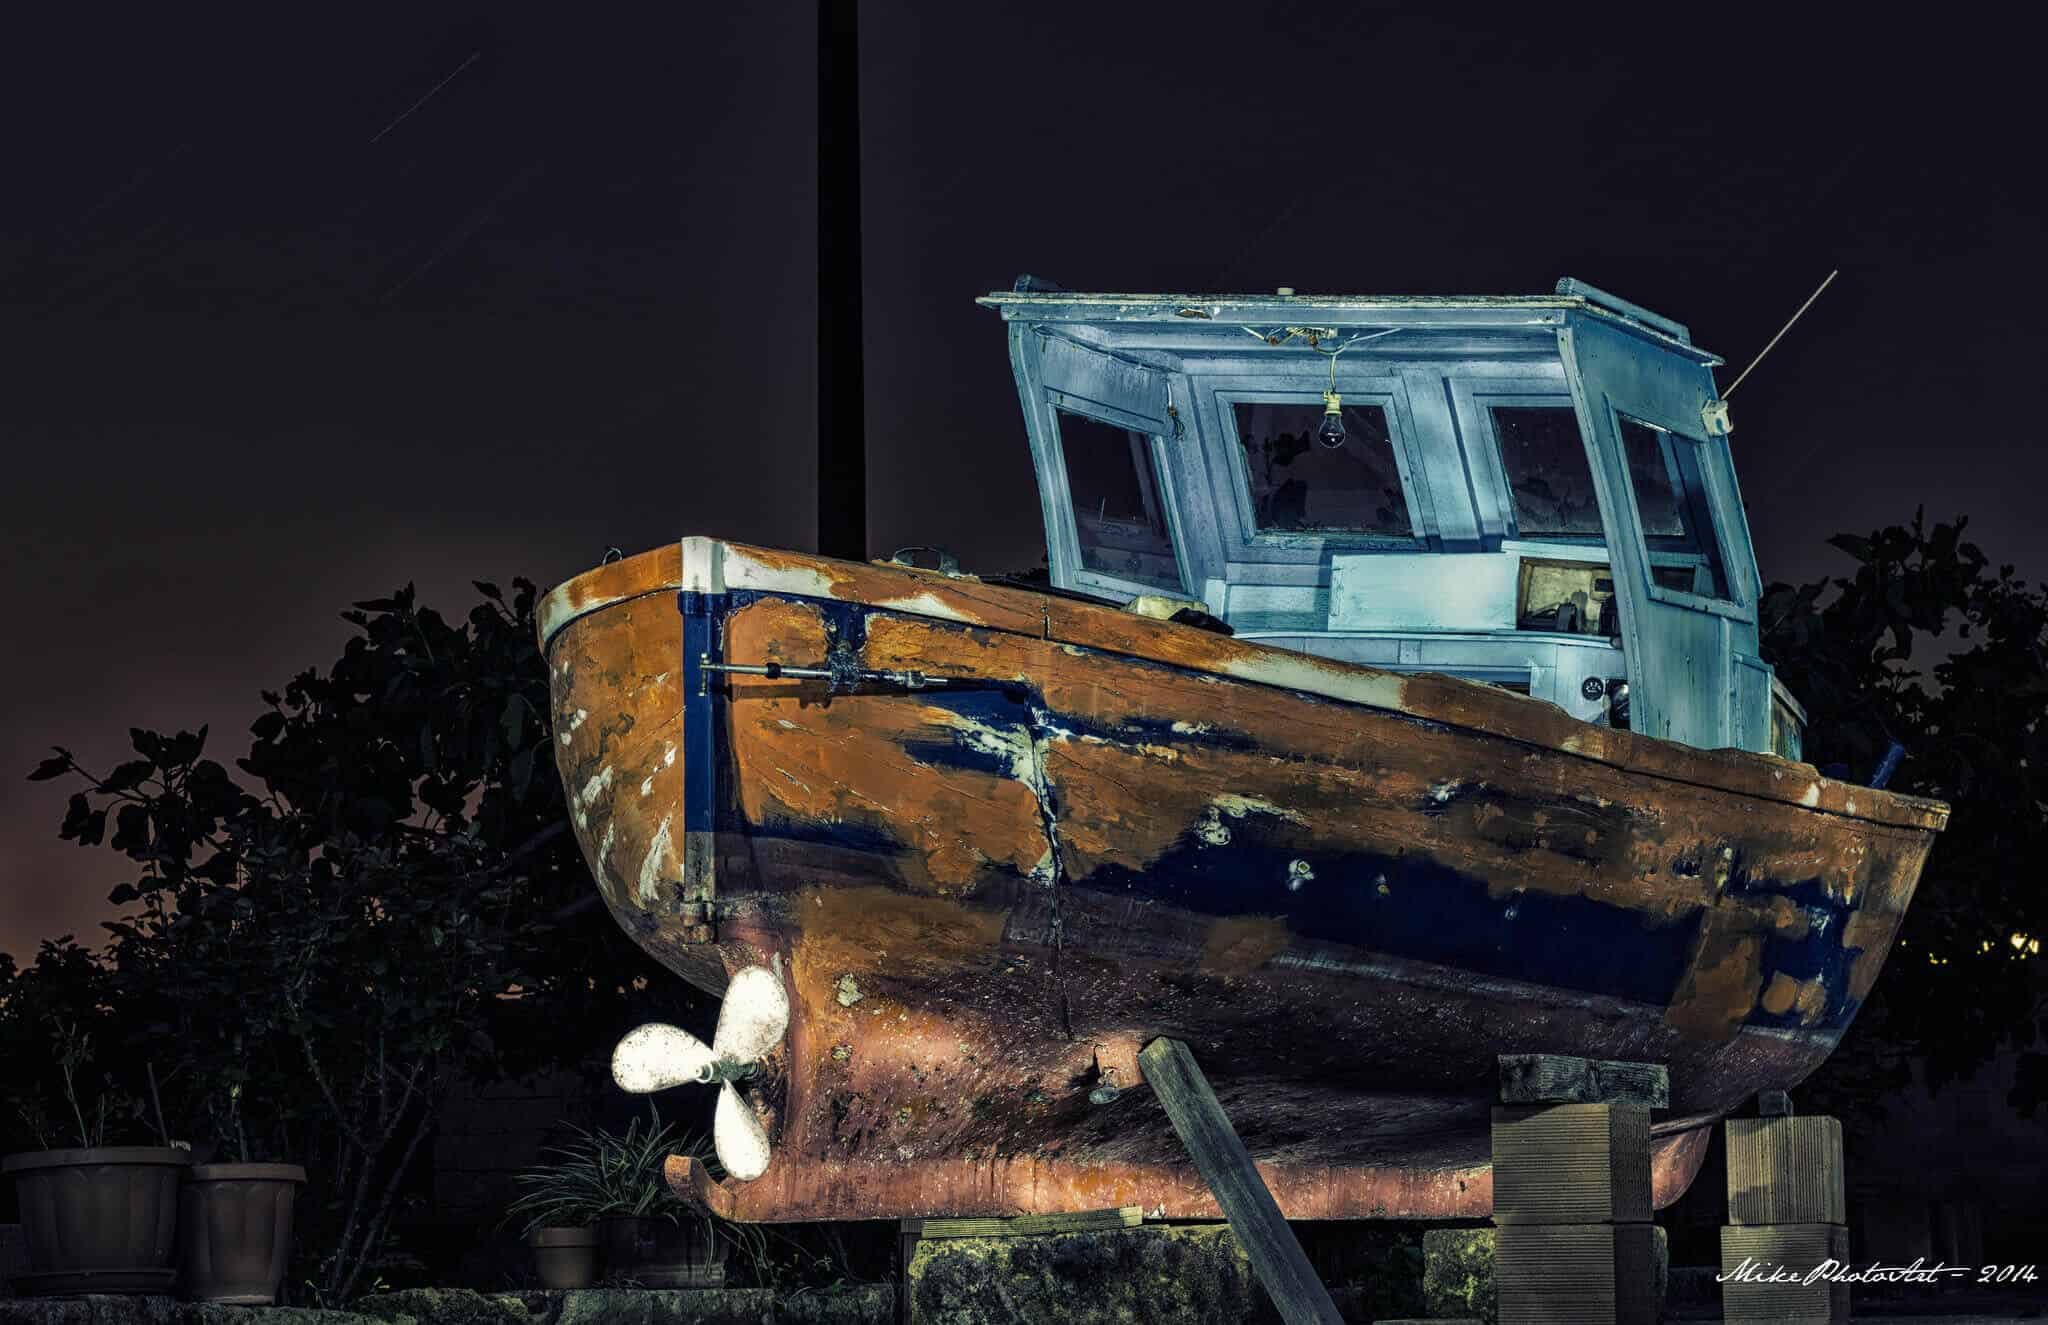 Flash Painting boat La barca by ©Mike Photo Art